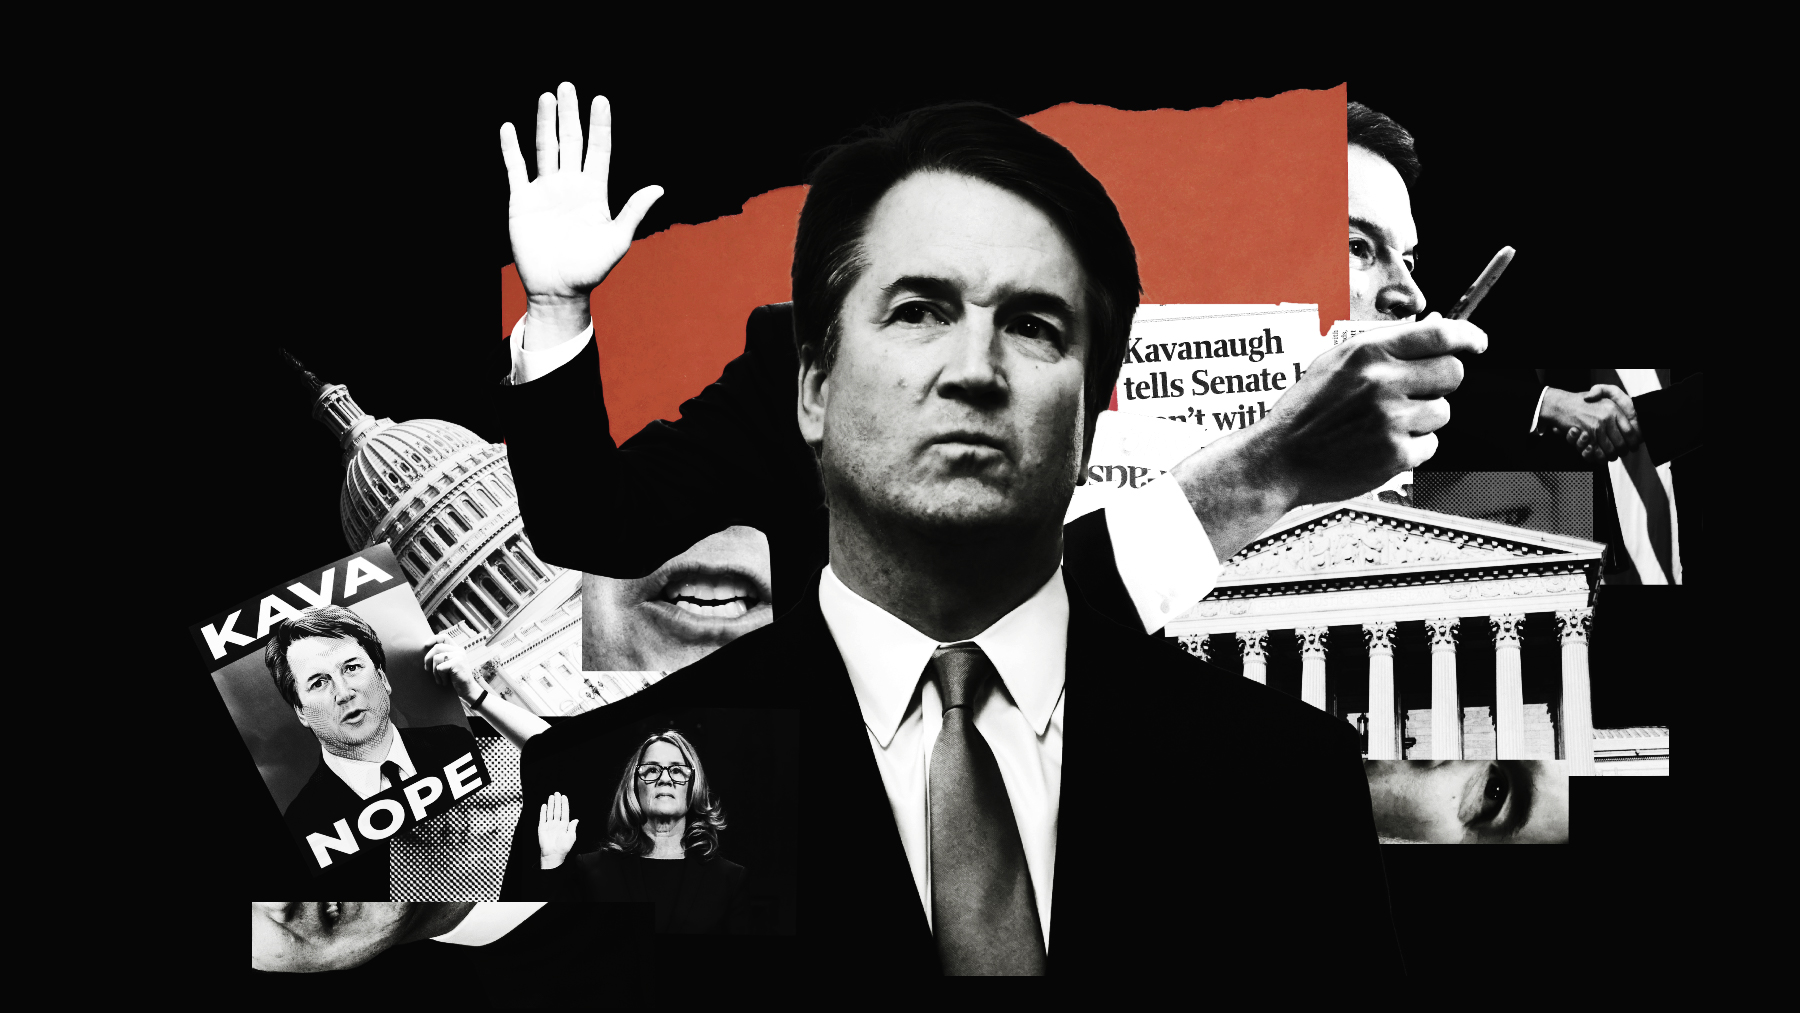 The allegations against Brett Kavanaugh ignited national controversy last year. Now it's happening again.